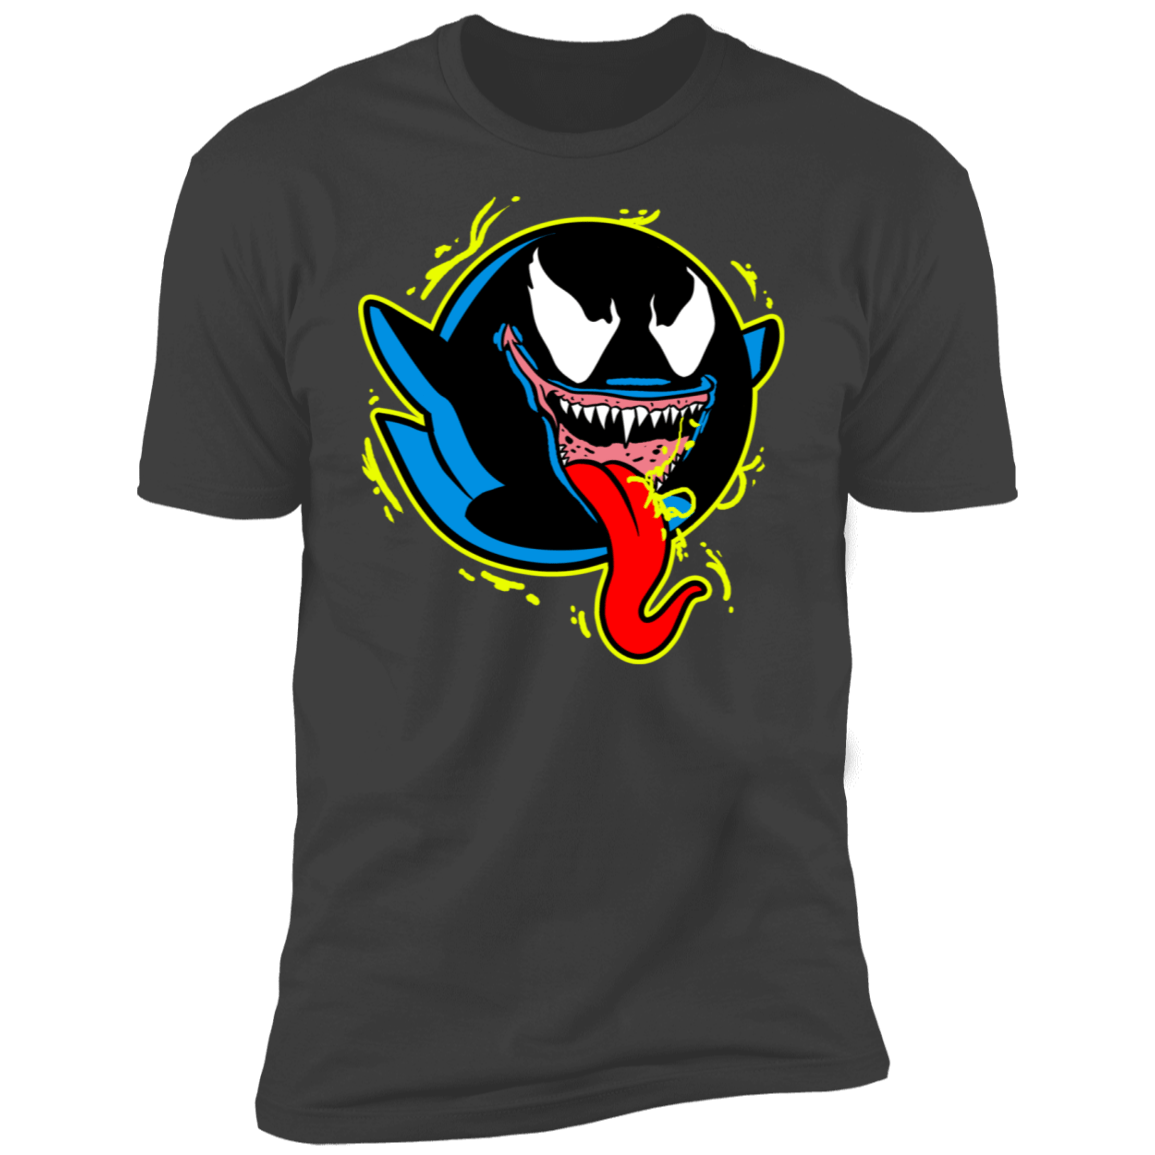 T-Shirts Heavy Metal / S Boo Venom Men's Premium T-Shirt